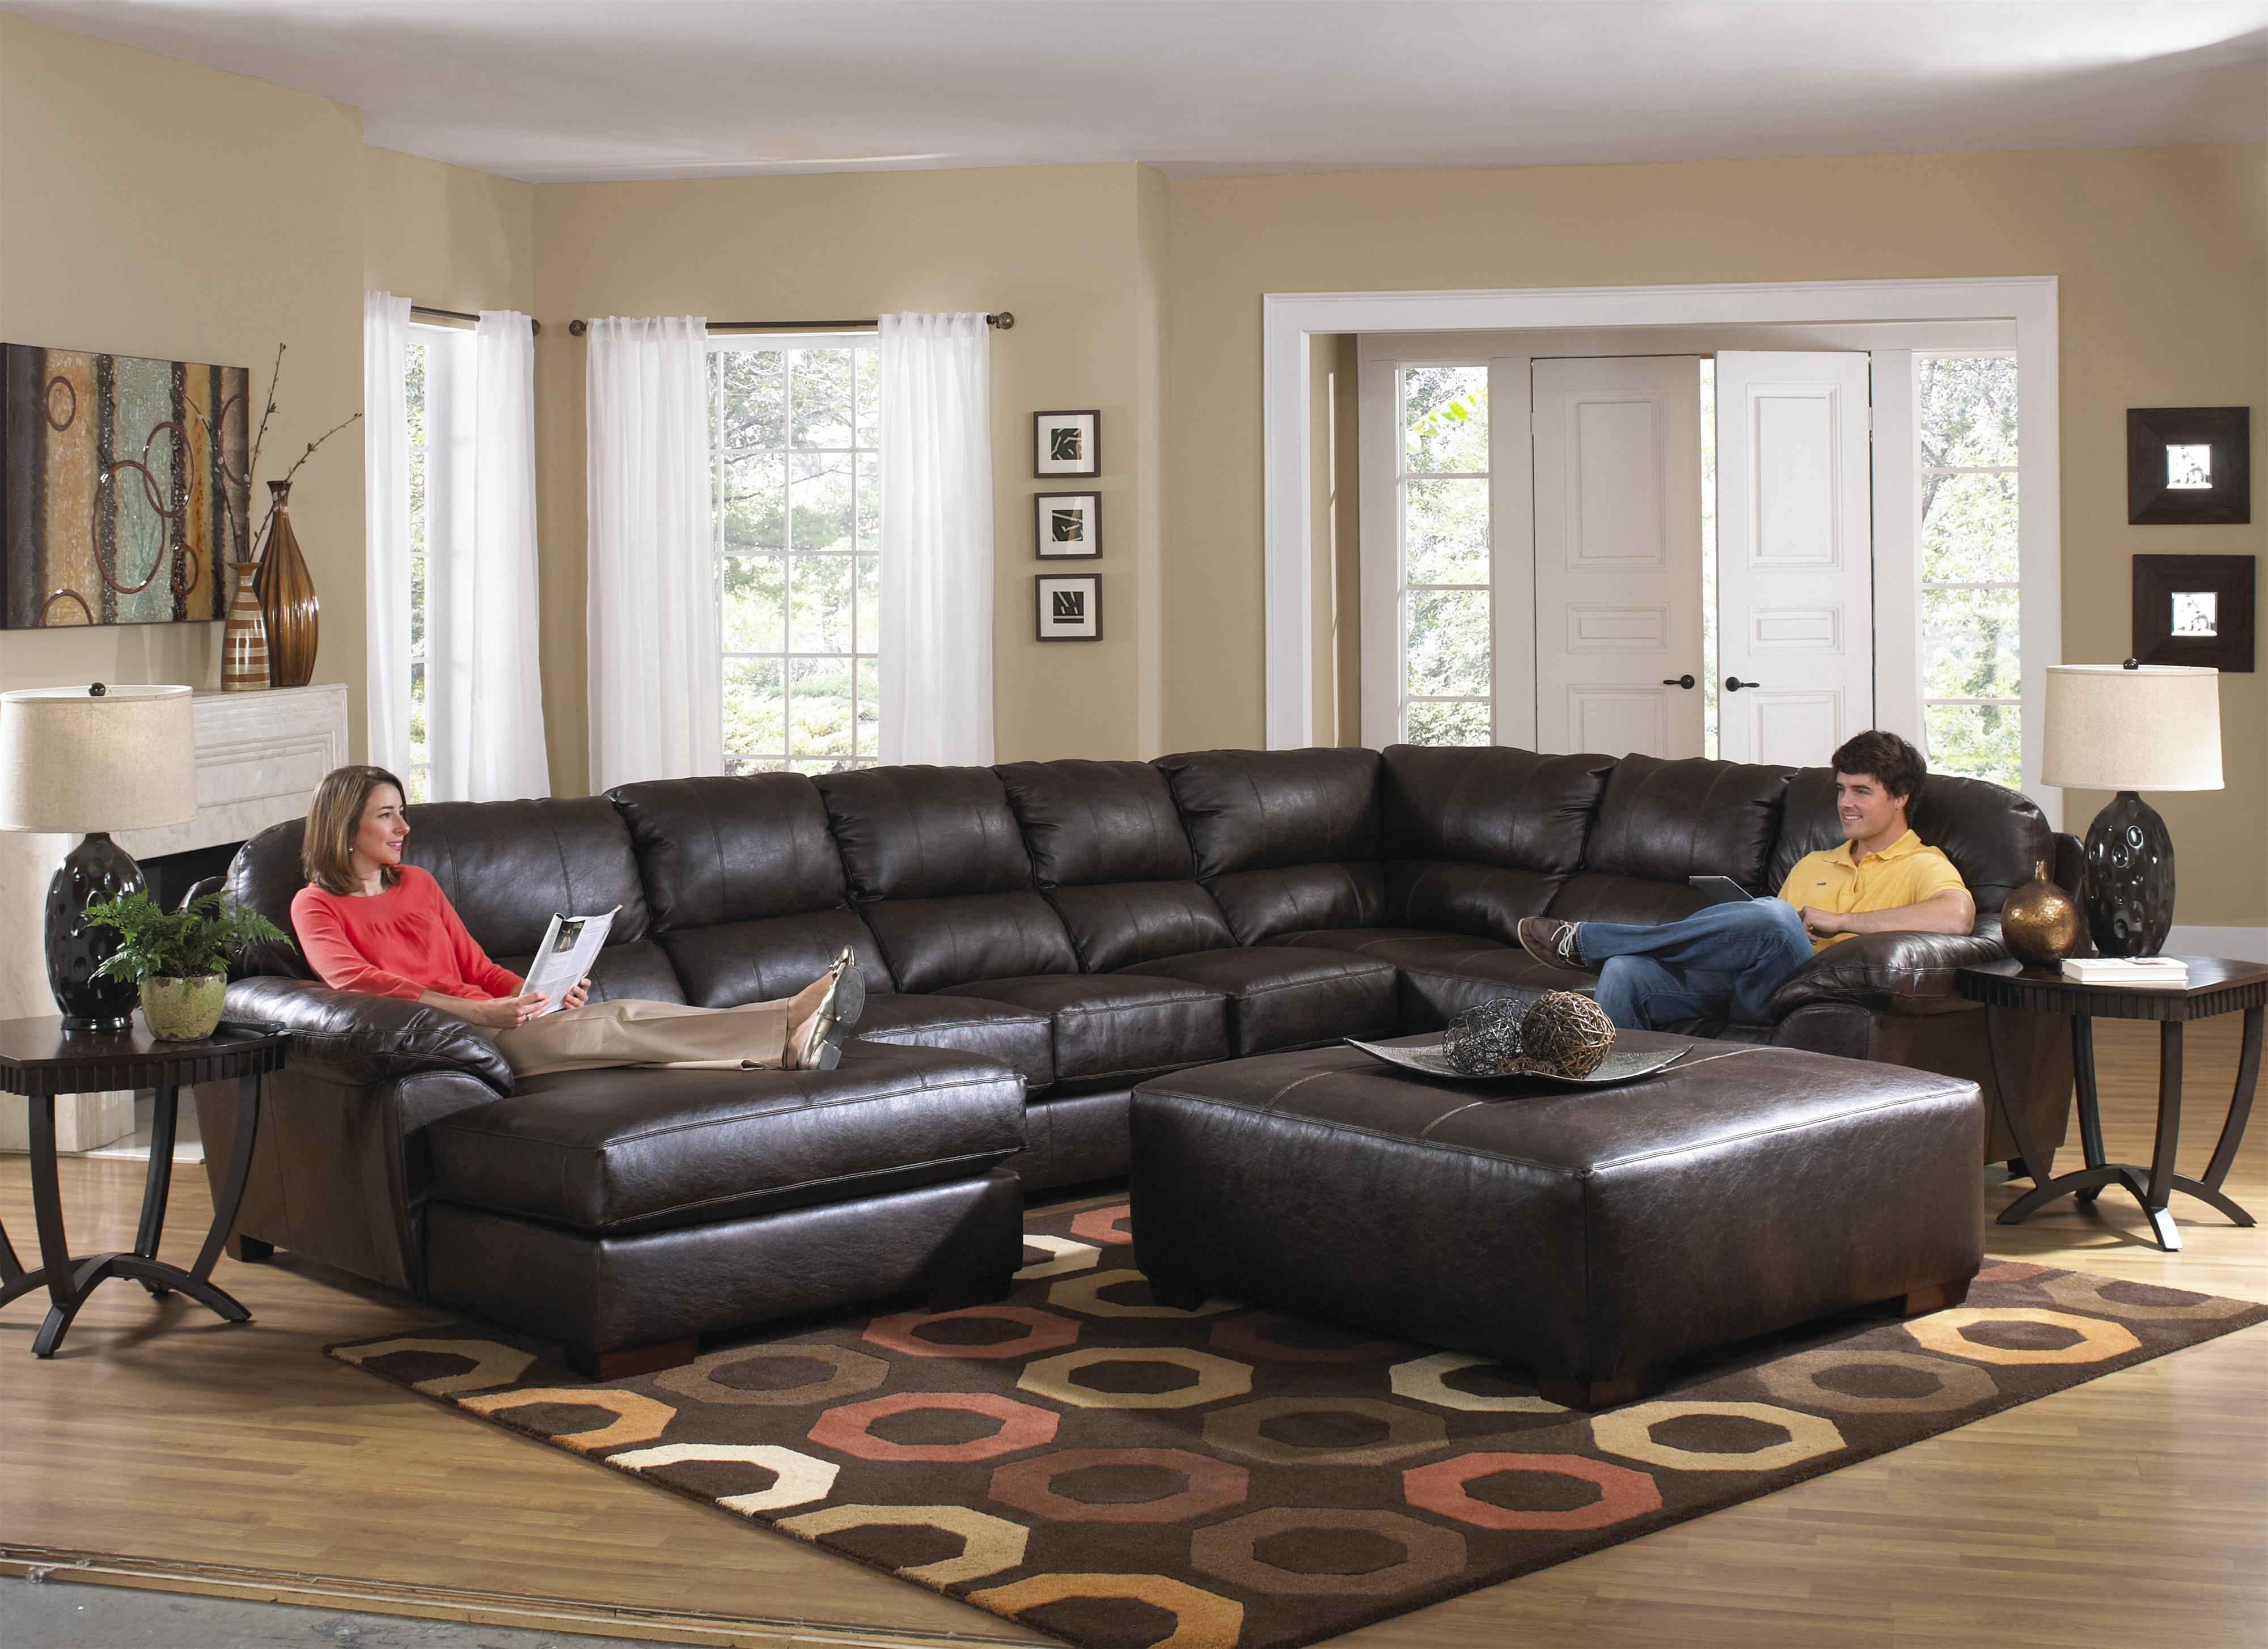 Oversized Couches Ashley Furniture Extra Deep Couch Oversized Throughout Most Recent Huge Sofas (View 10 of 15)